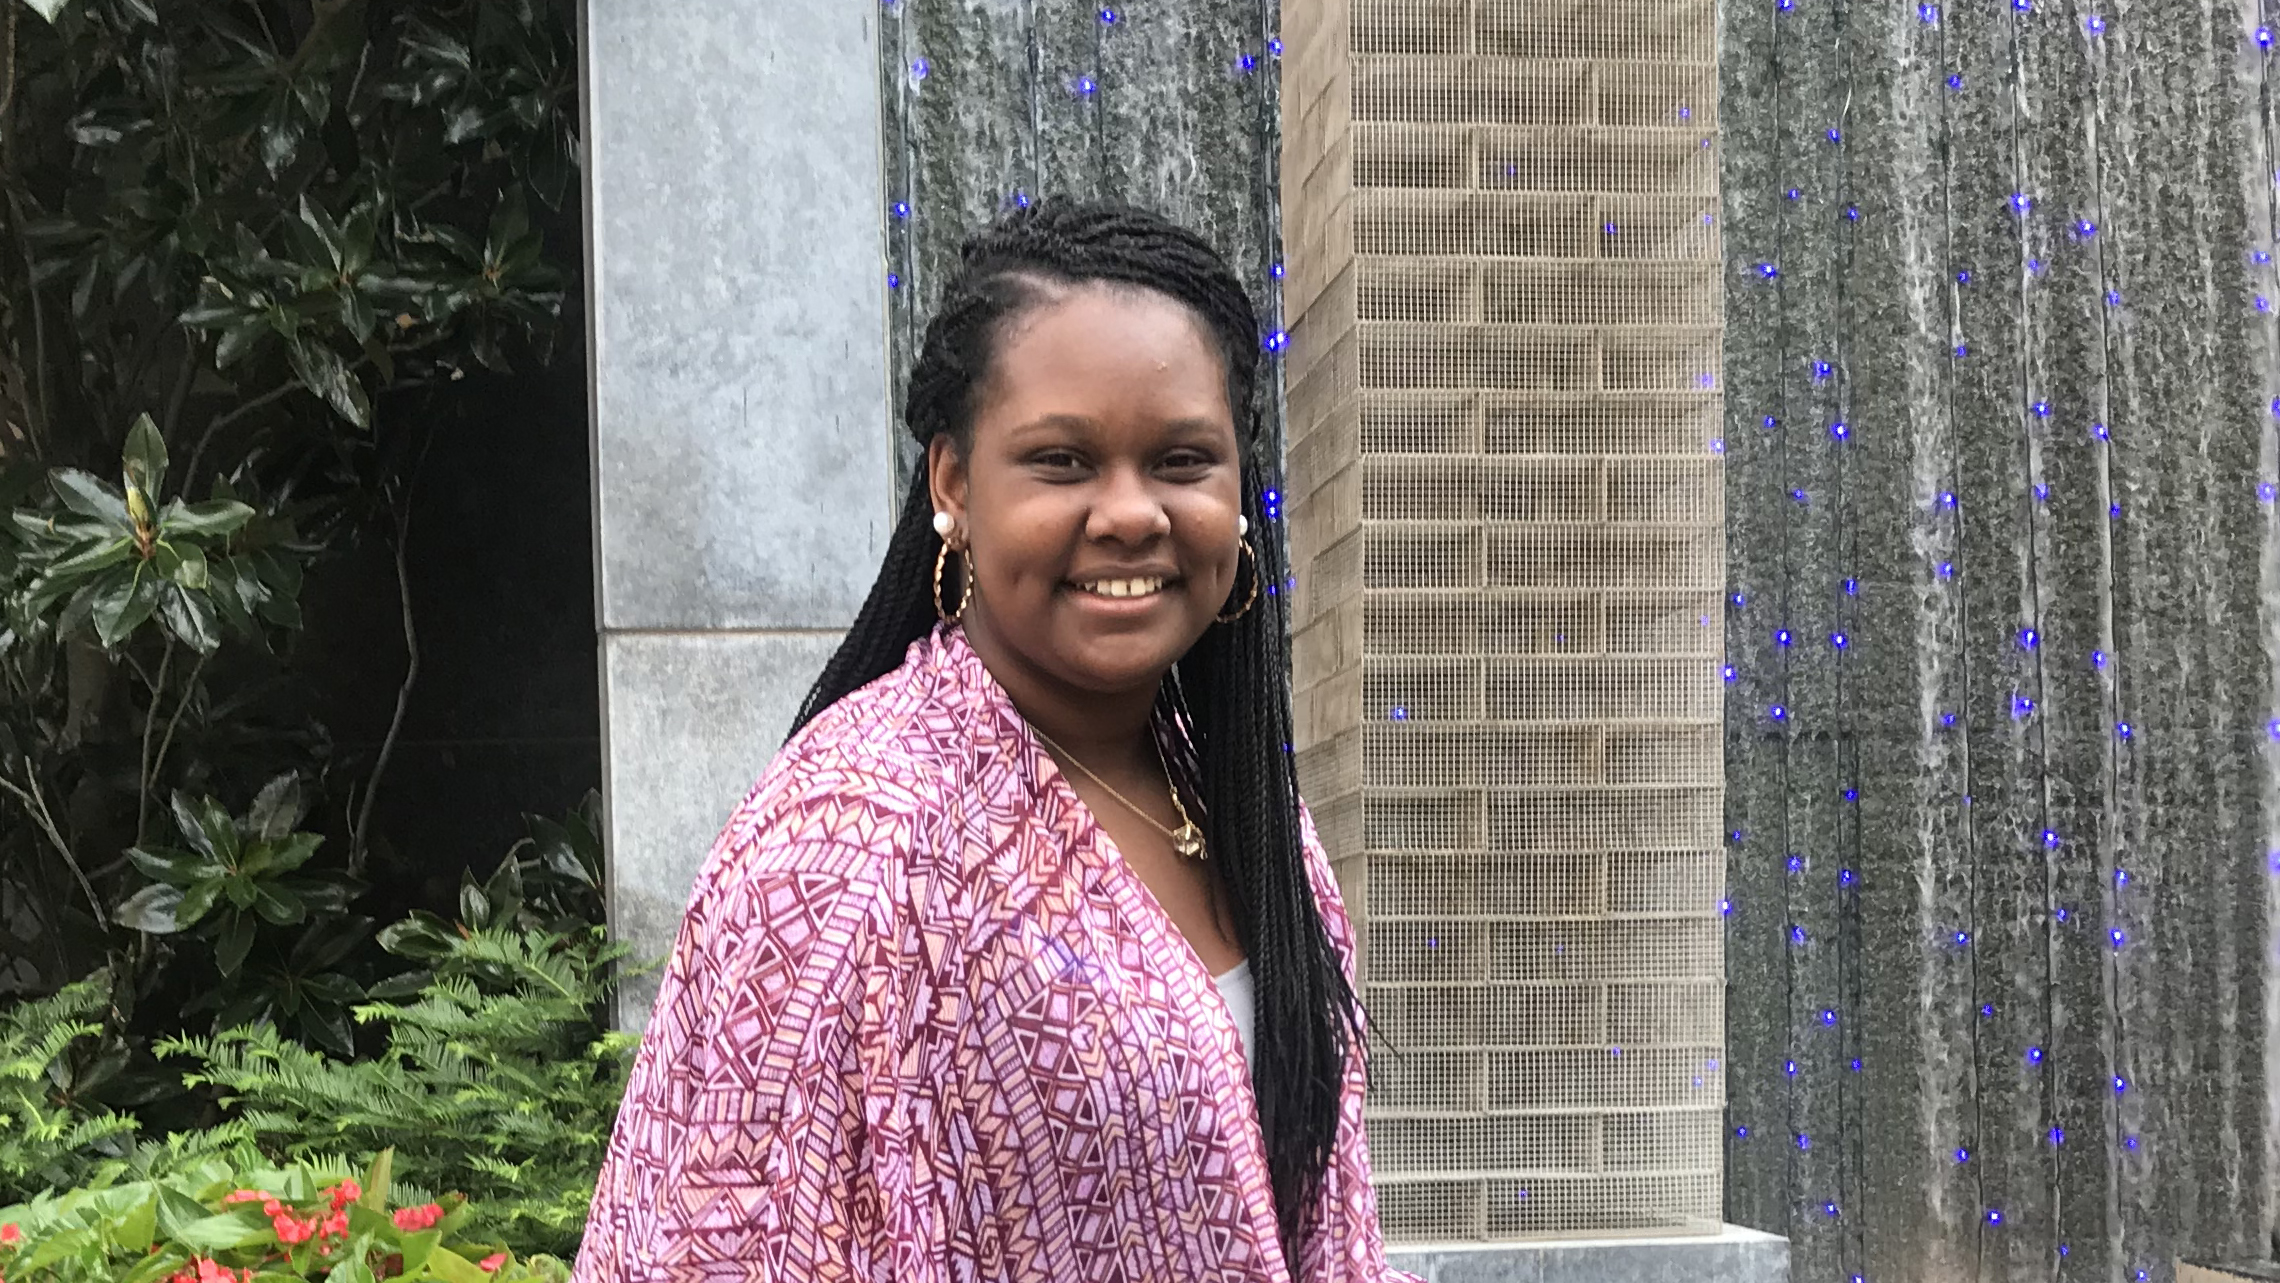 A photo of Kay Stumpter, a member of the NC State College of Education Class of 2022